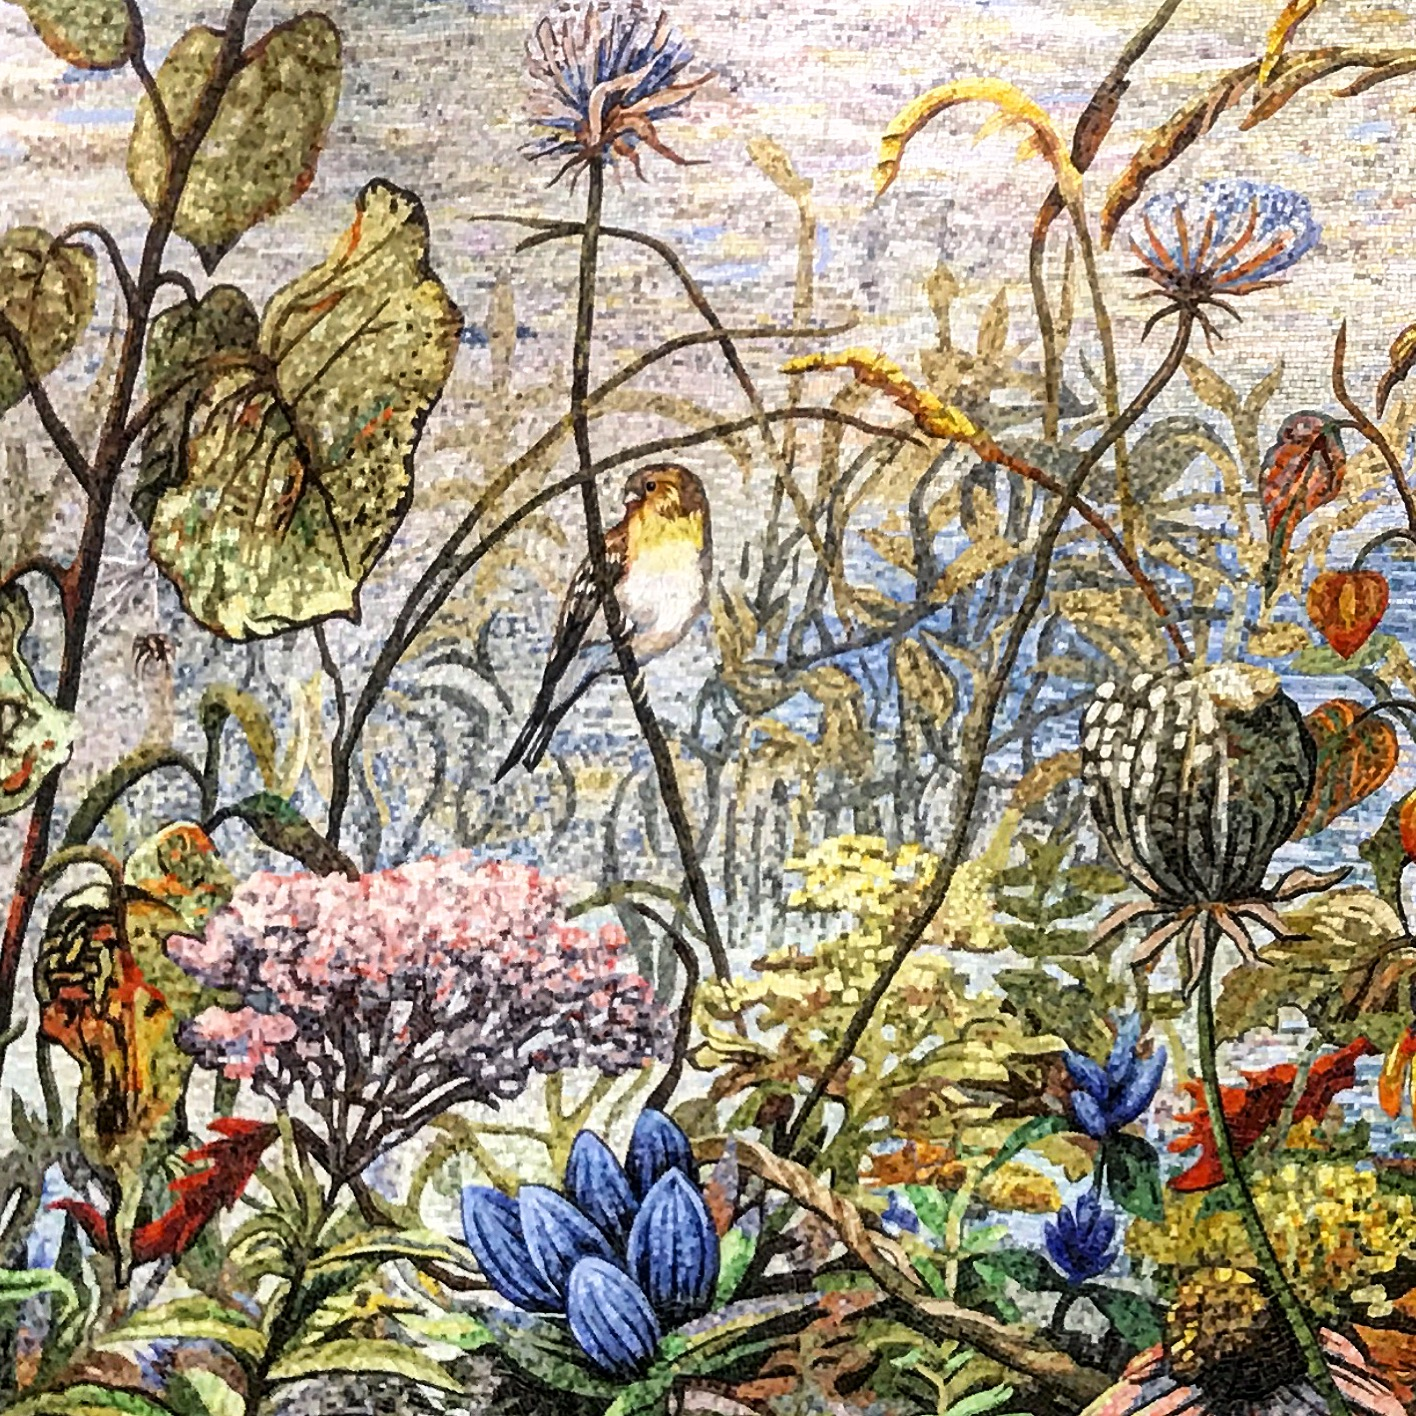 Soil formed under prairie in the Midwest. A mosaic from the Indianapolis International Airport.